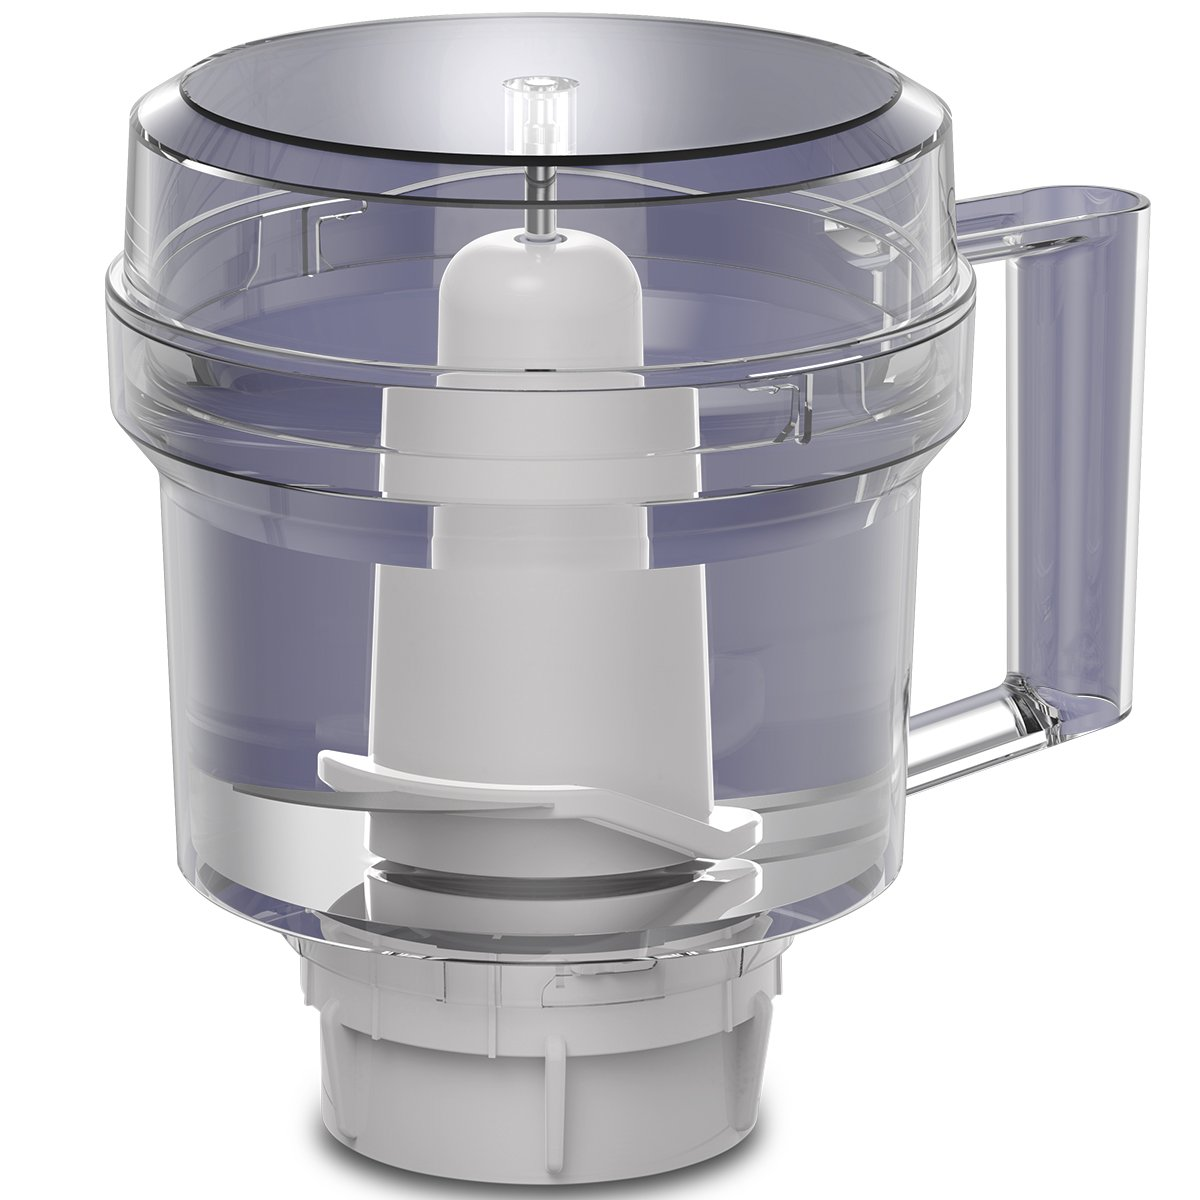 Oster BLSTFC-W00-011 Food Processor Attachement, Small, White by Oster